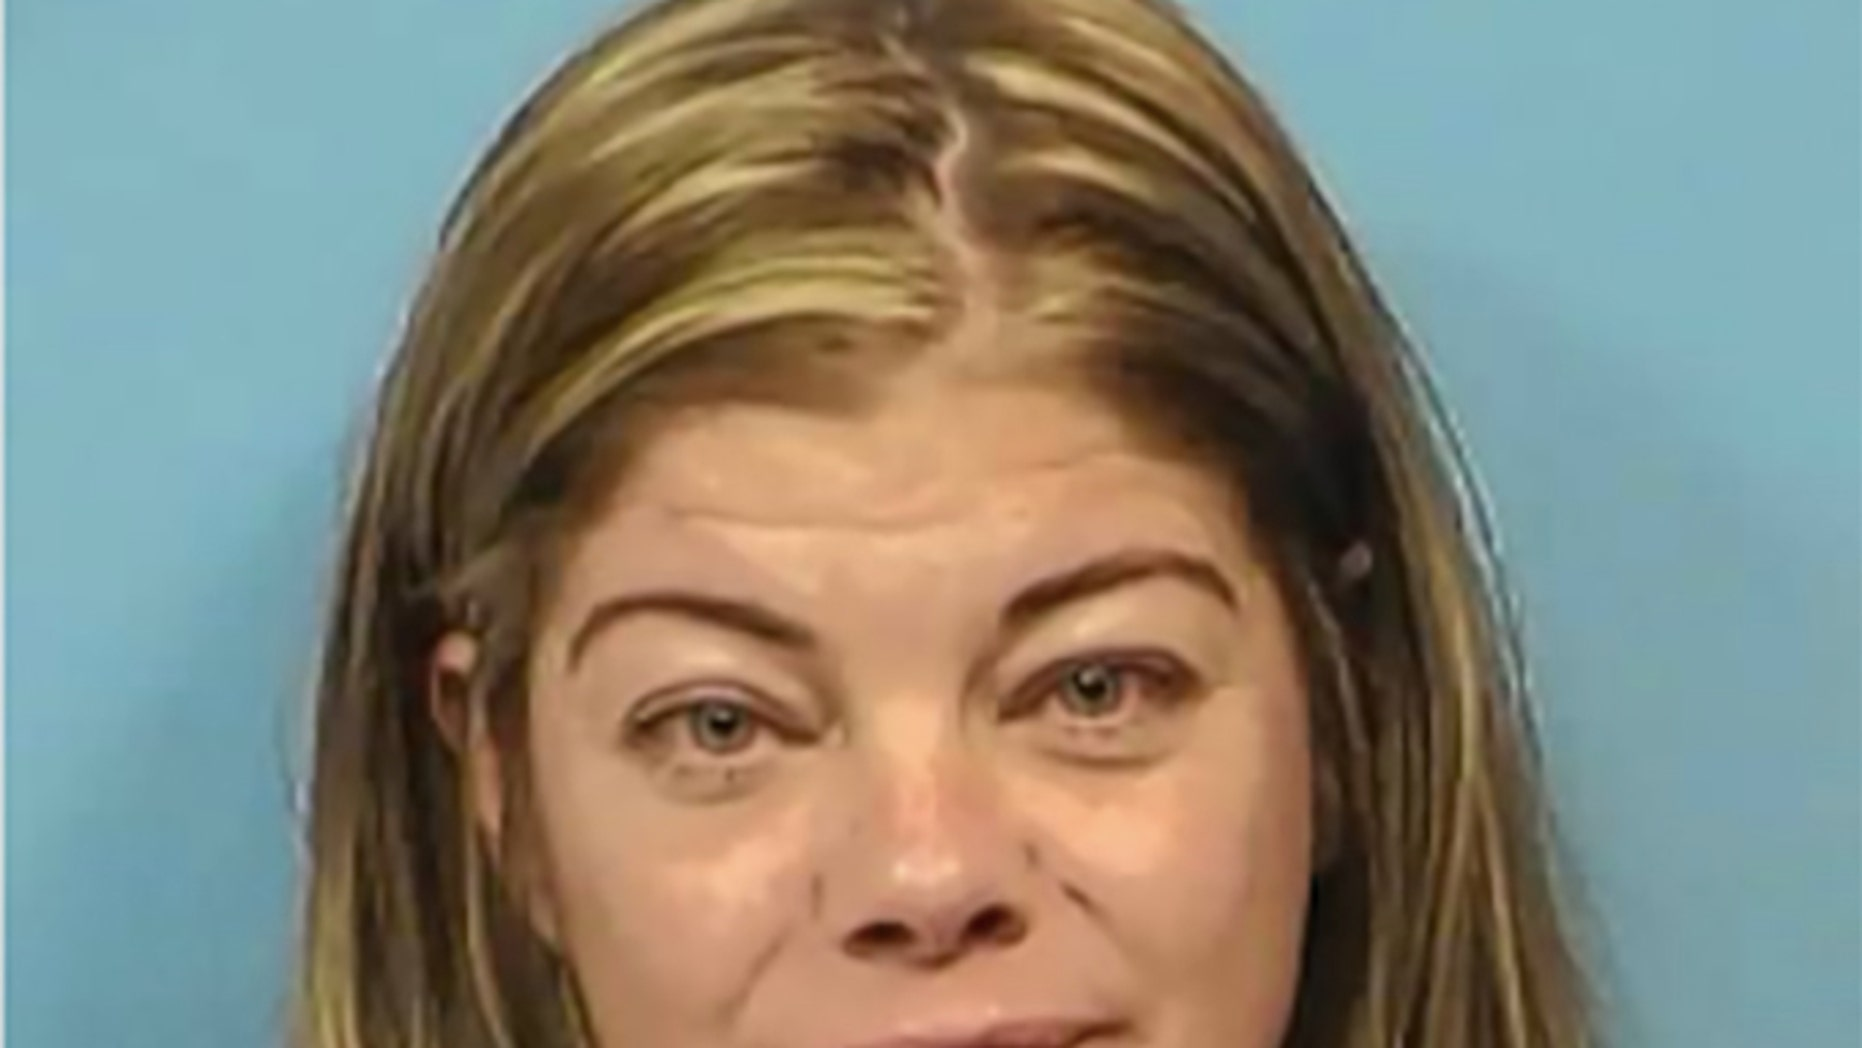 Christine M. Taylor was sentenced to probation. (DuPage County Sheriff's Office)